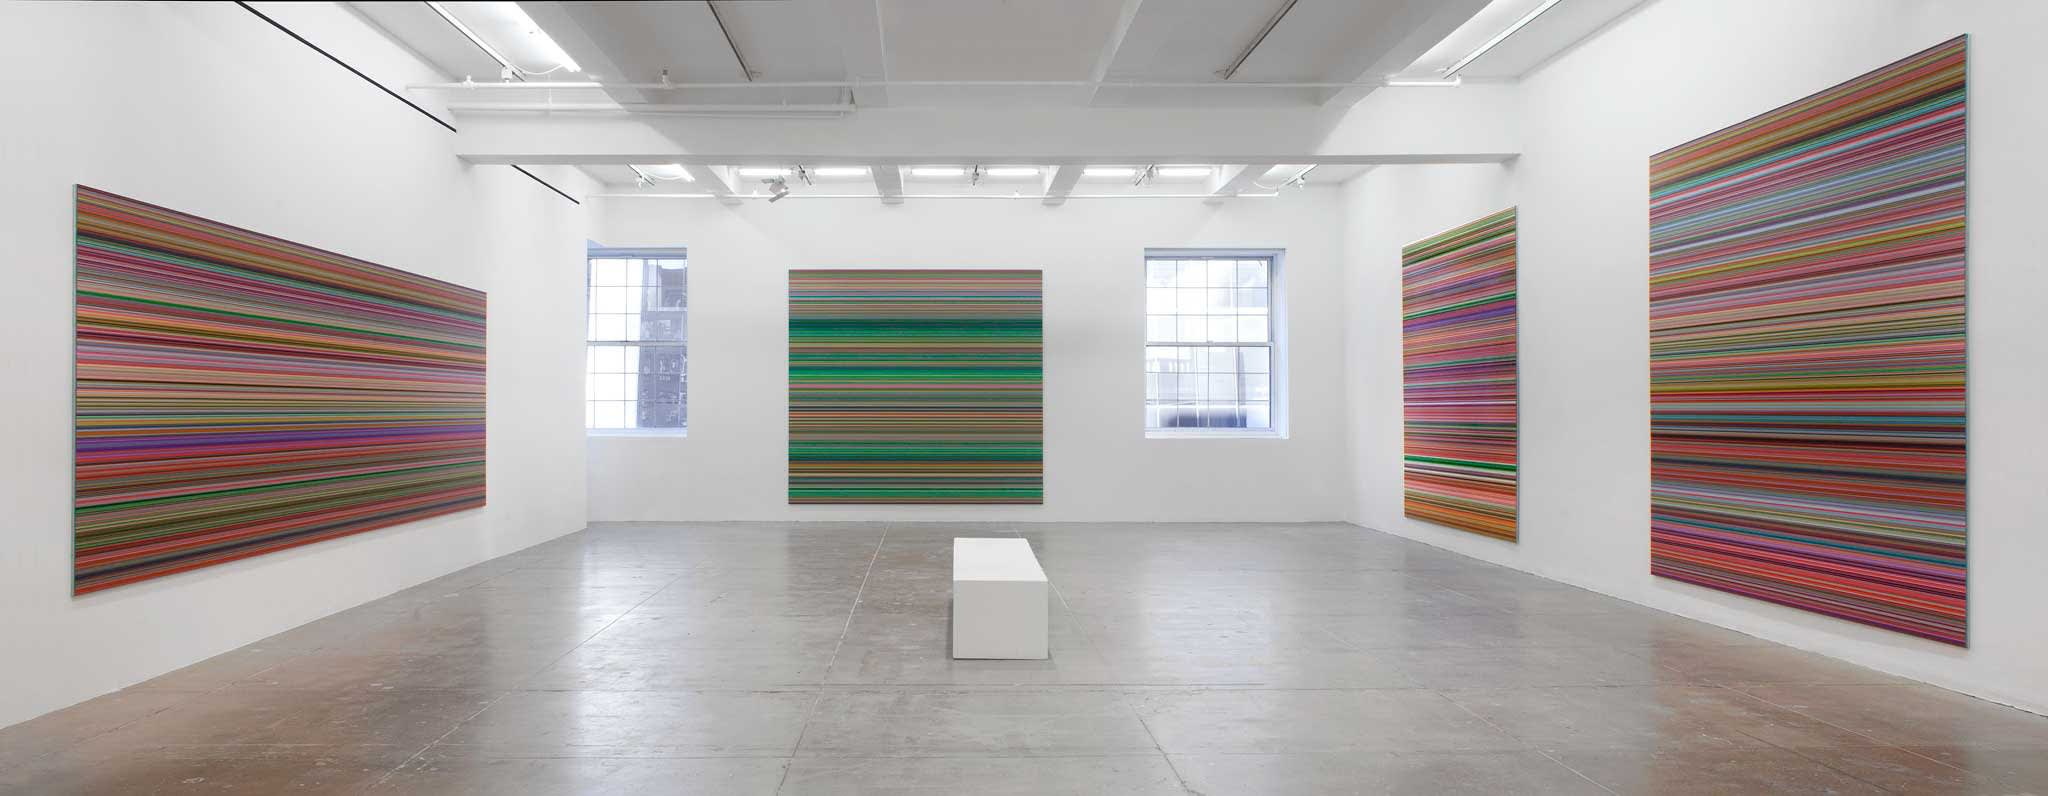 Four paintings, two on separate walls, three with a mix of primarily red vertical stripes among other colors; one with primarily green vertical stripes